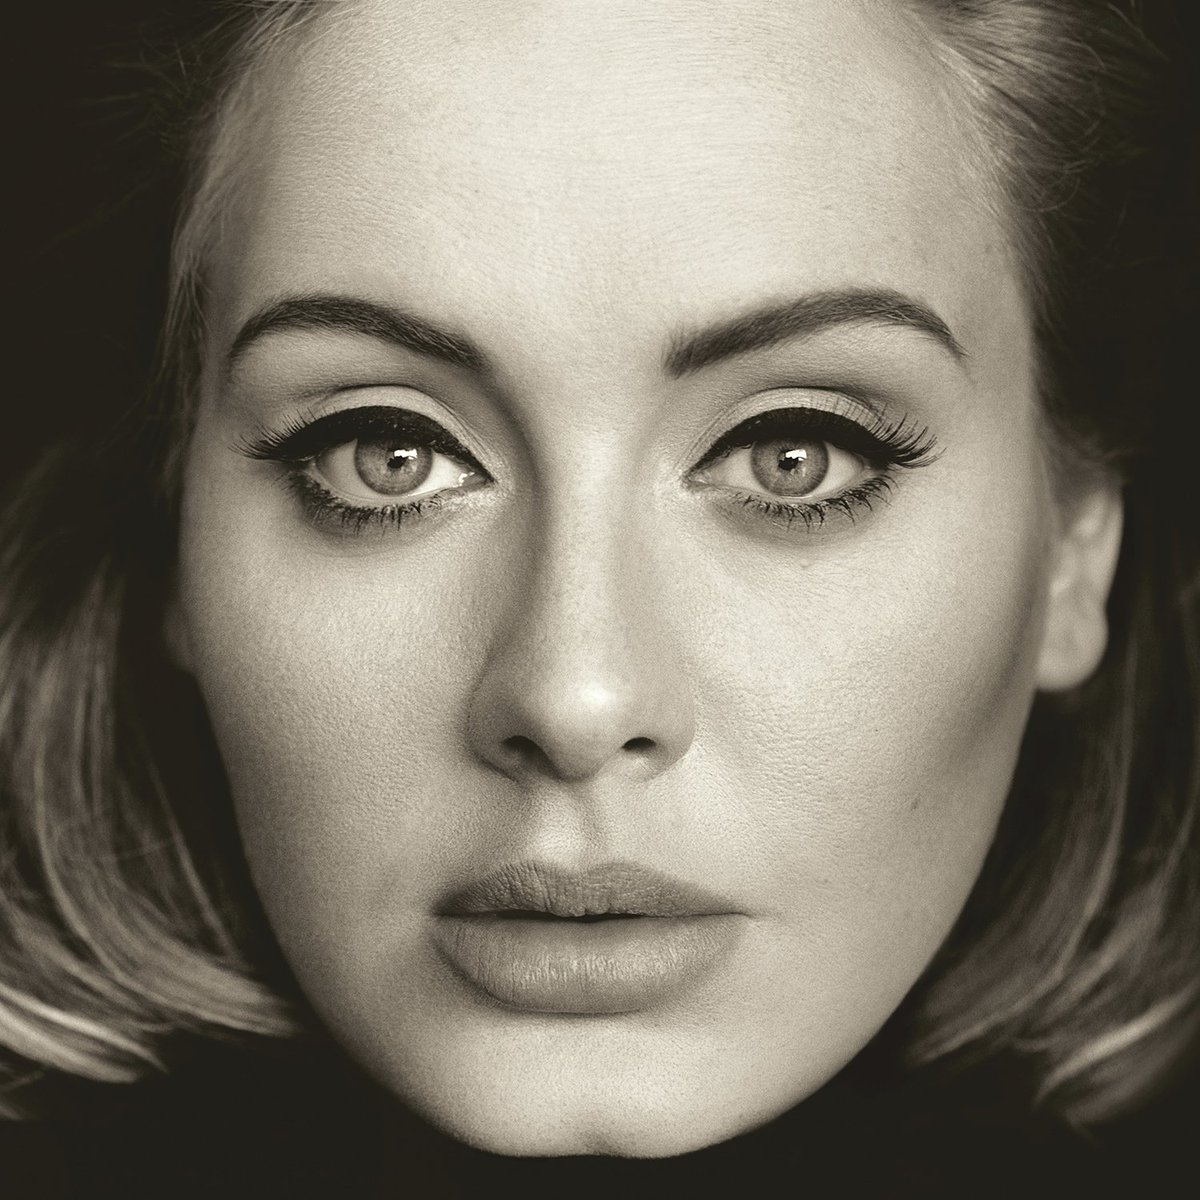 .@Adele 's new album 25 is now available at @BestBuy! Visit a store or purchase here https://t.co/4RSW538hb6 #ad https://t.co/PGDlkN5yfy